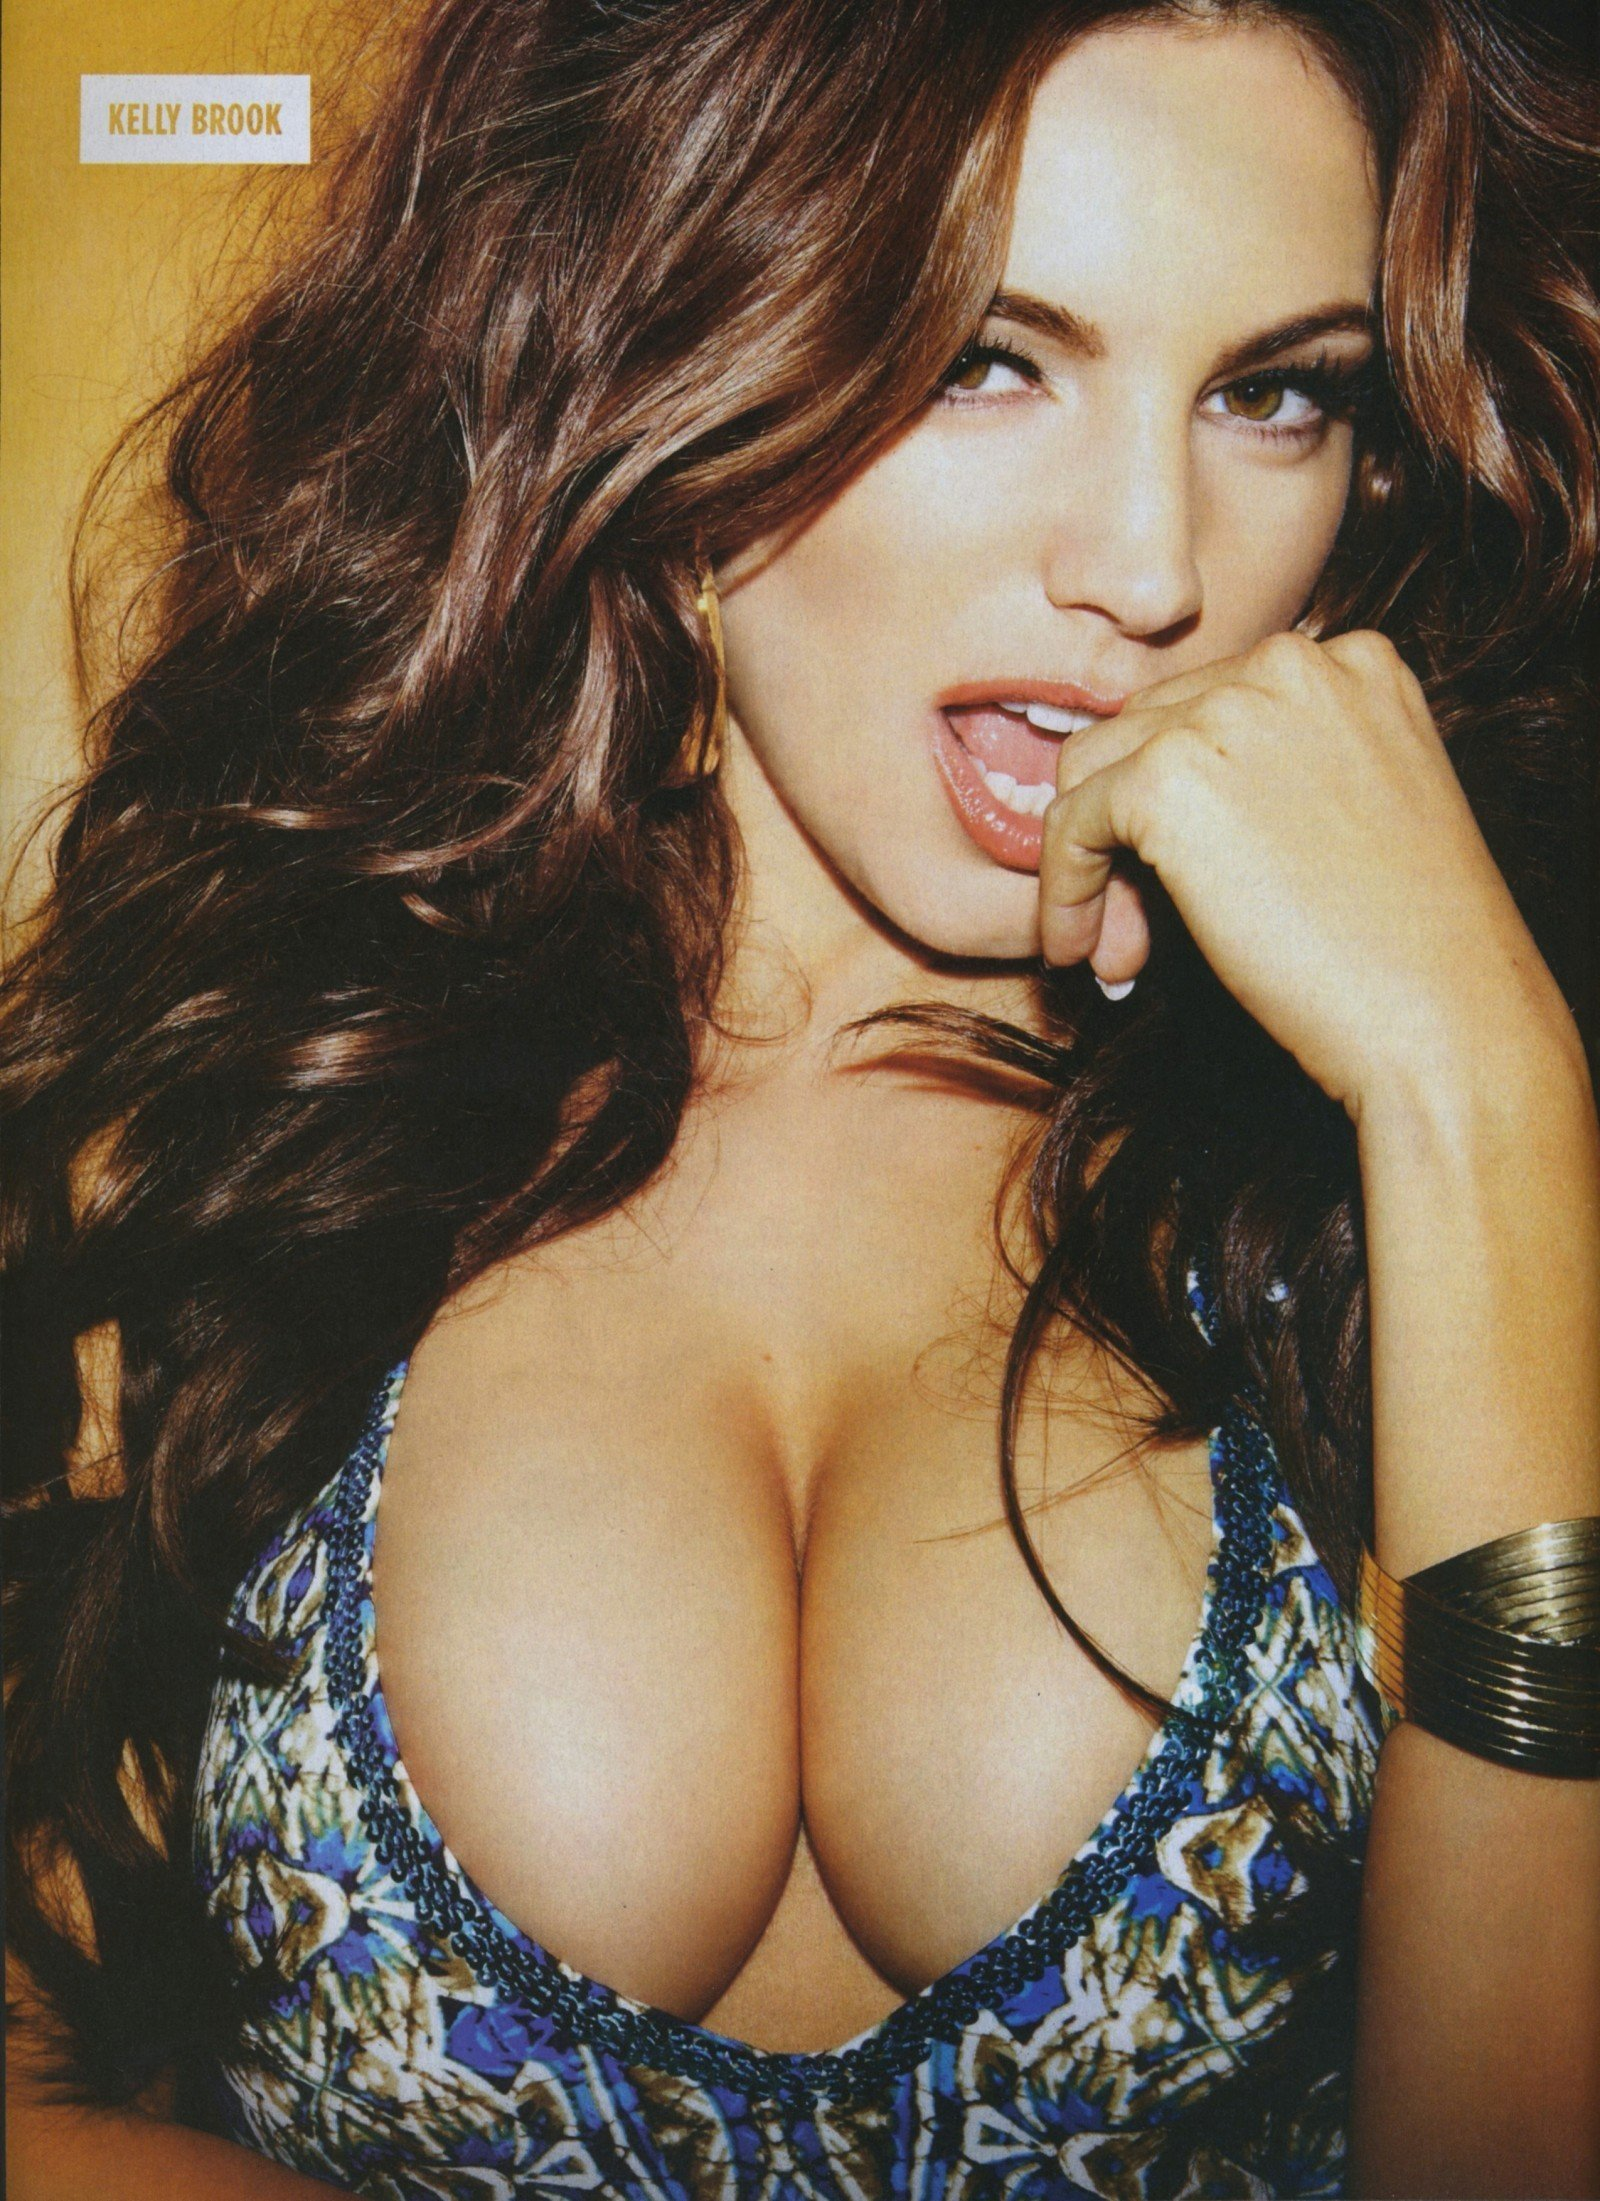 Kelly Brook Hot Photos